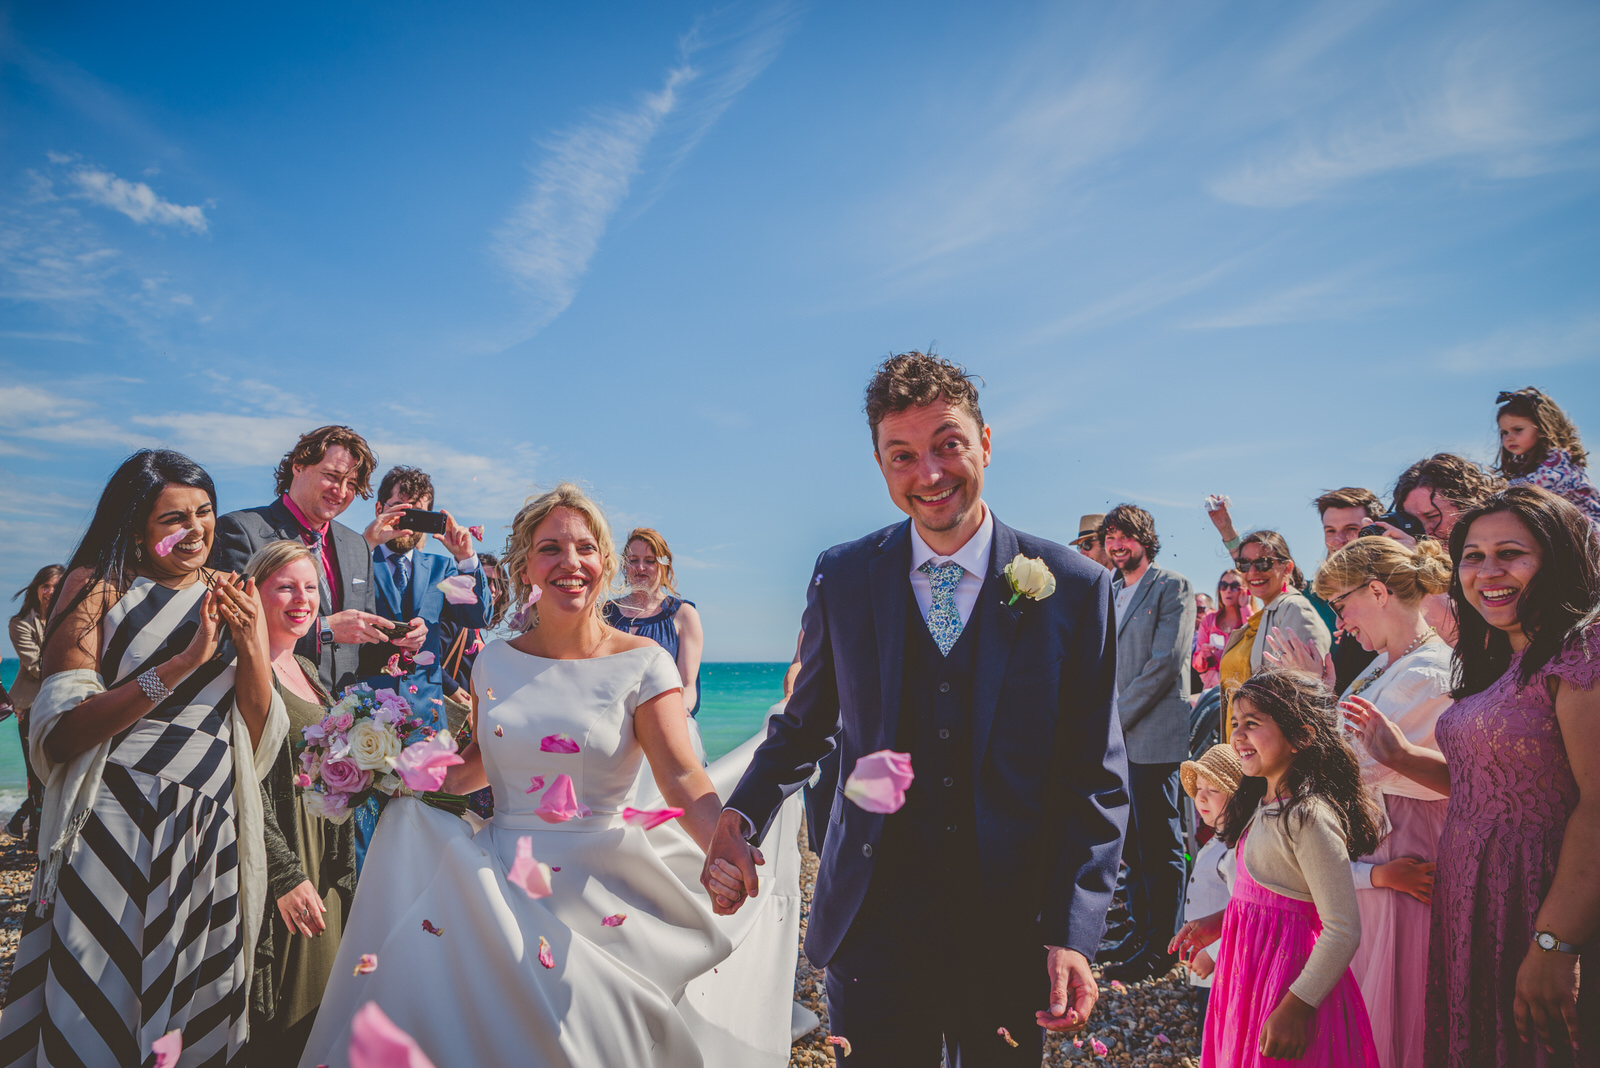 Bride and groom on worthing beach